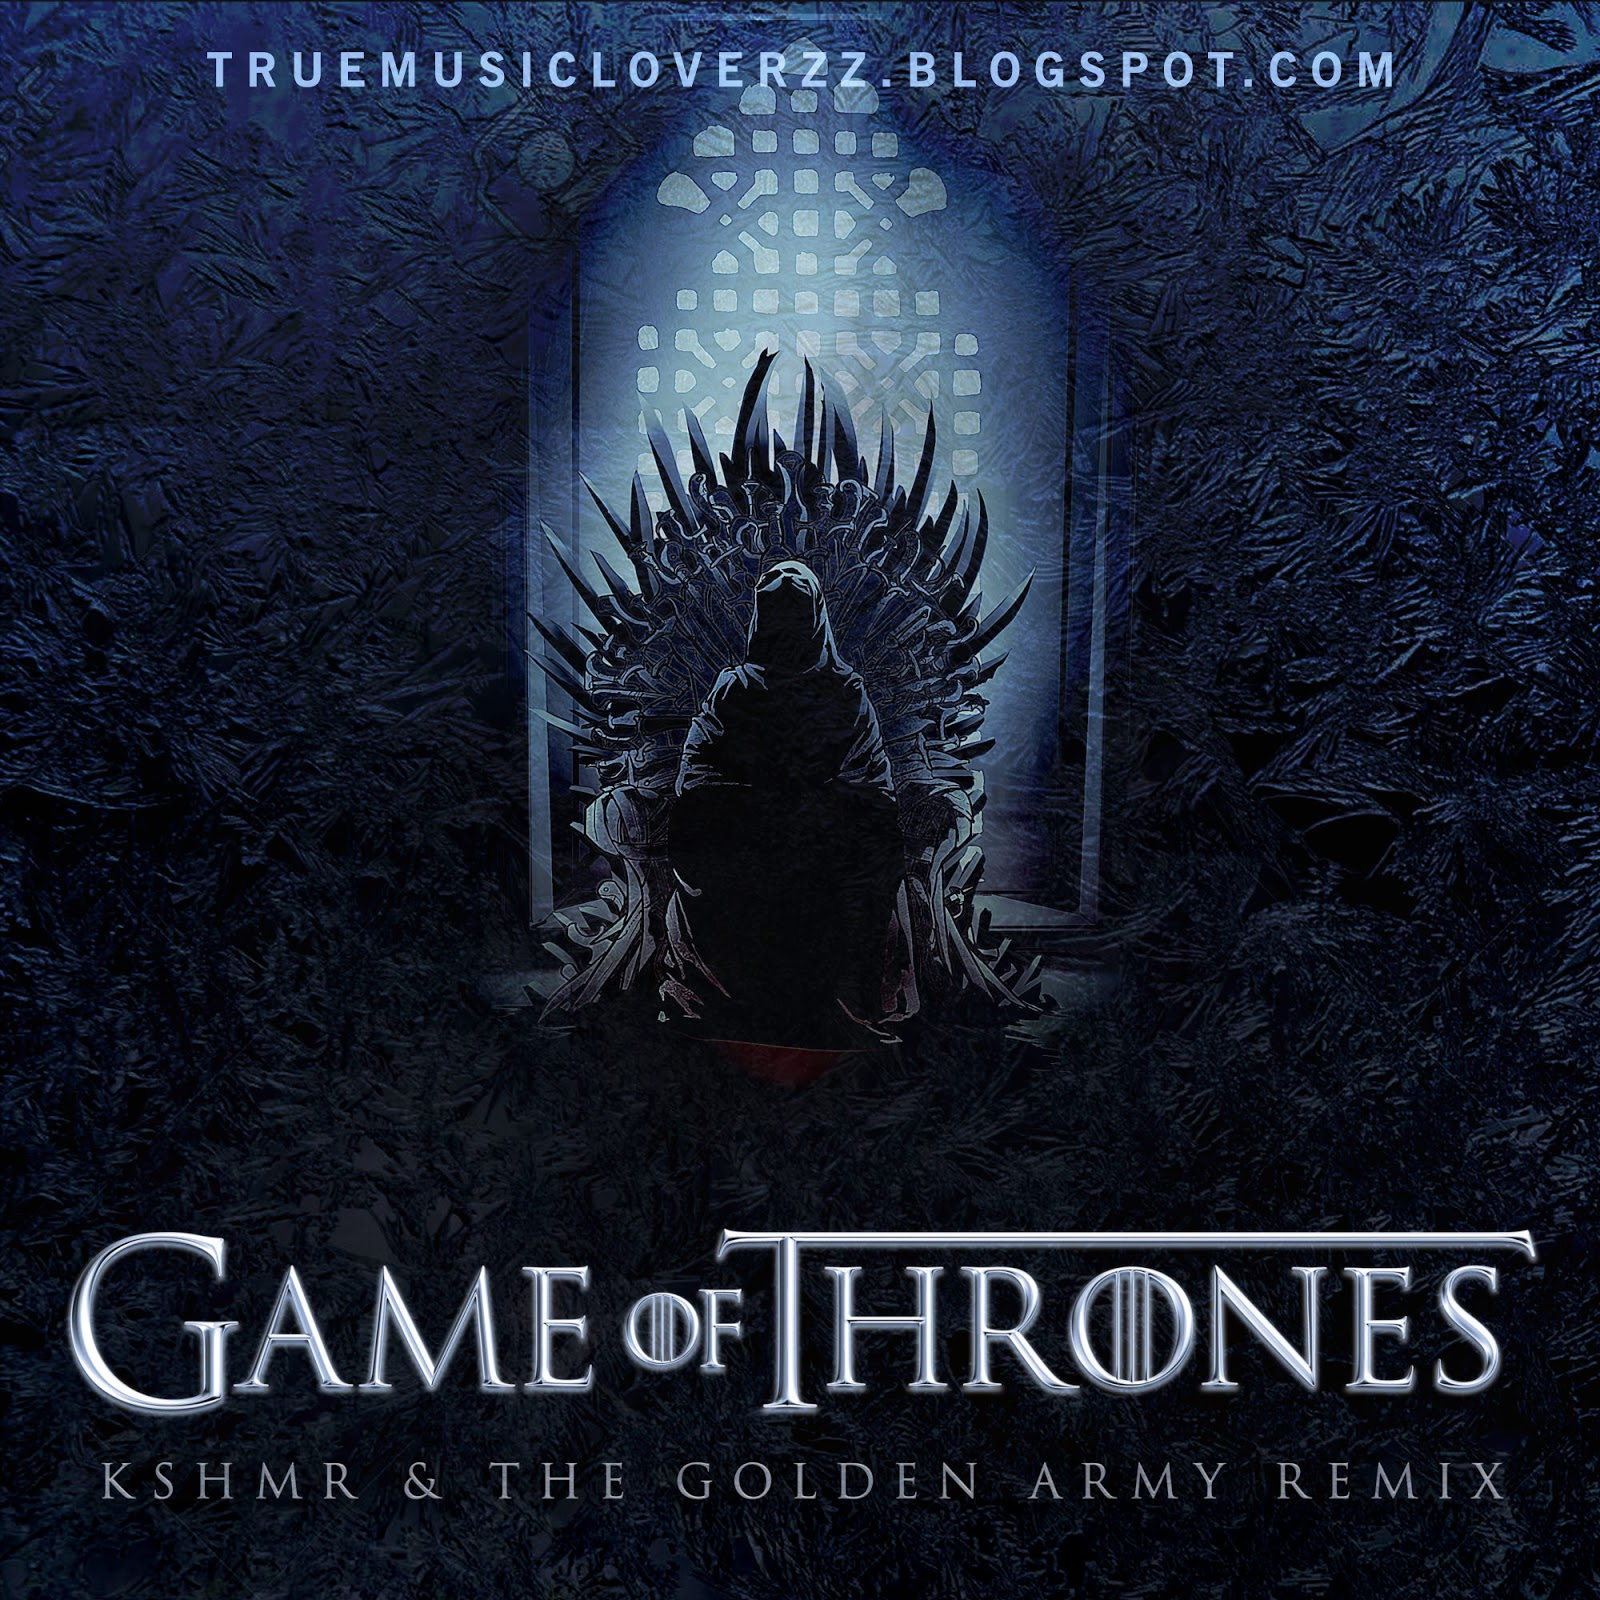 game of thrones soundtrack download mp3